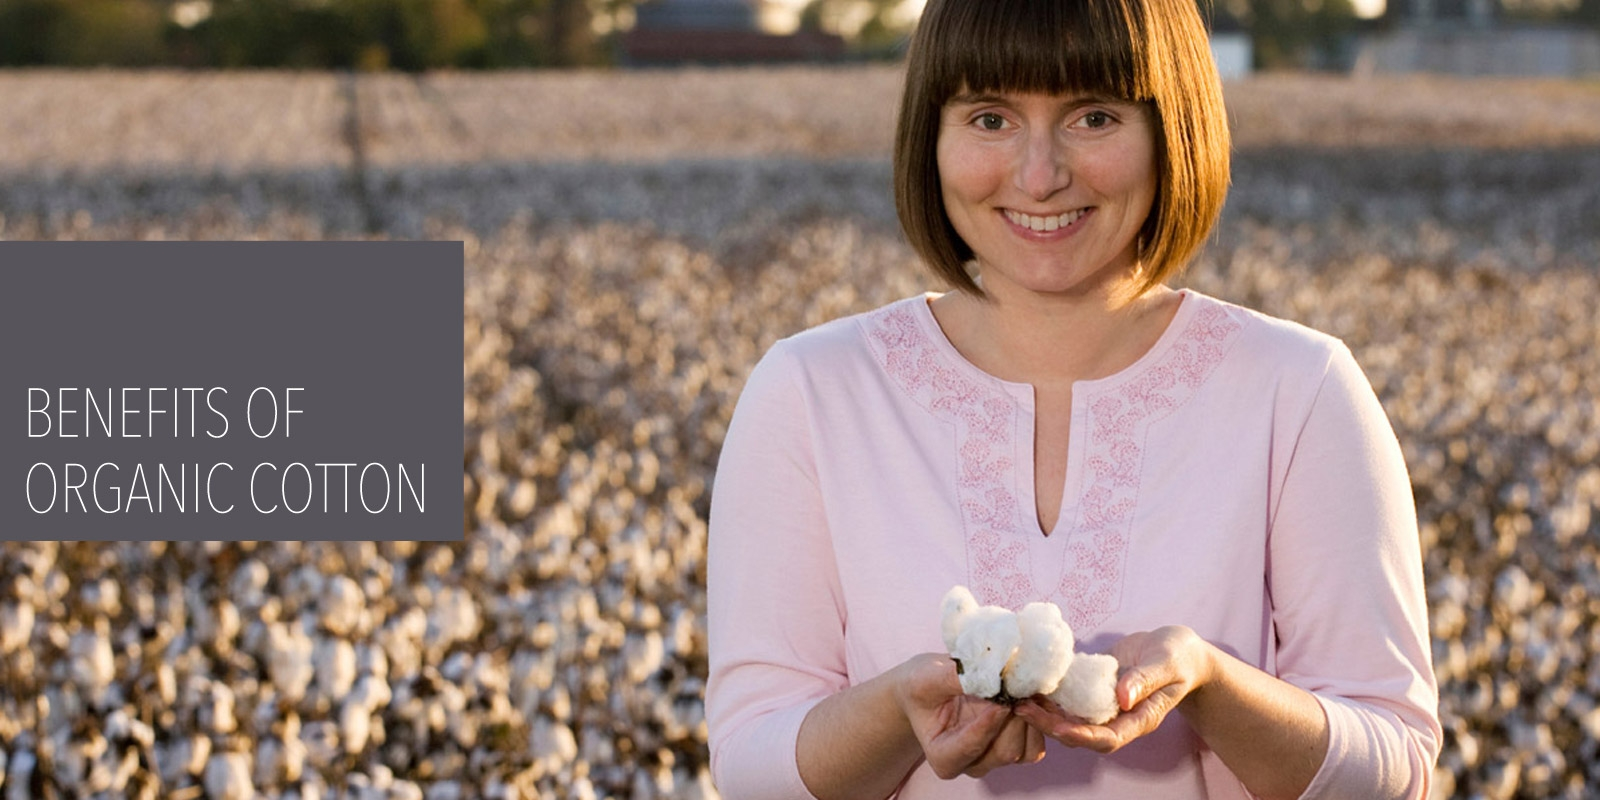 Benefits of Organic Cotton